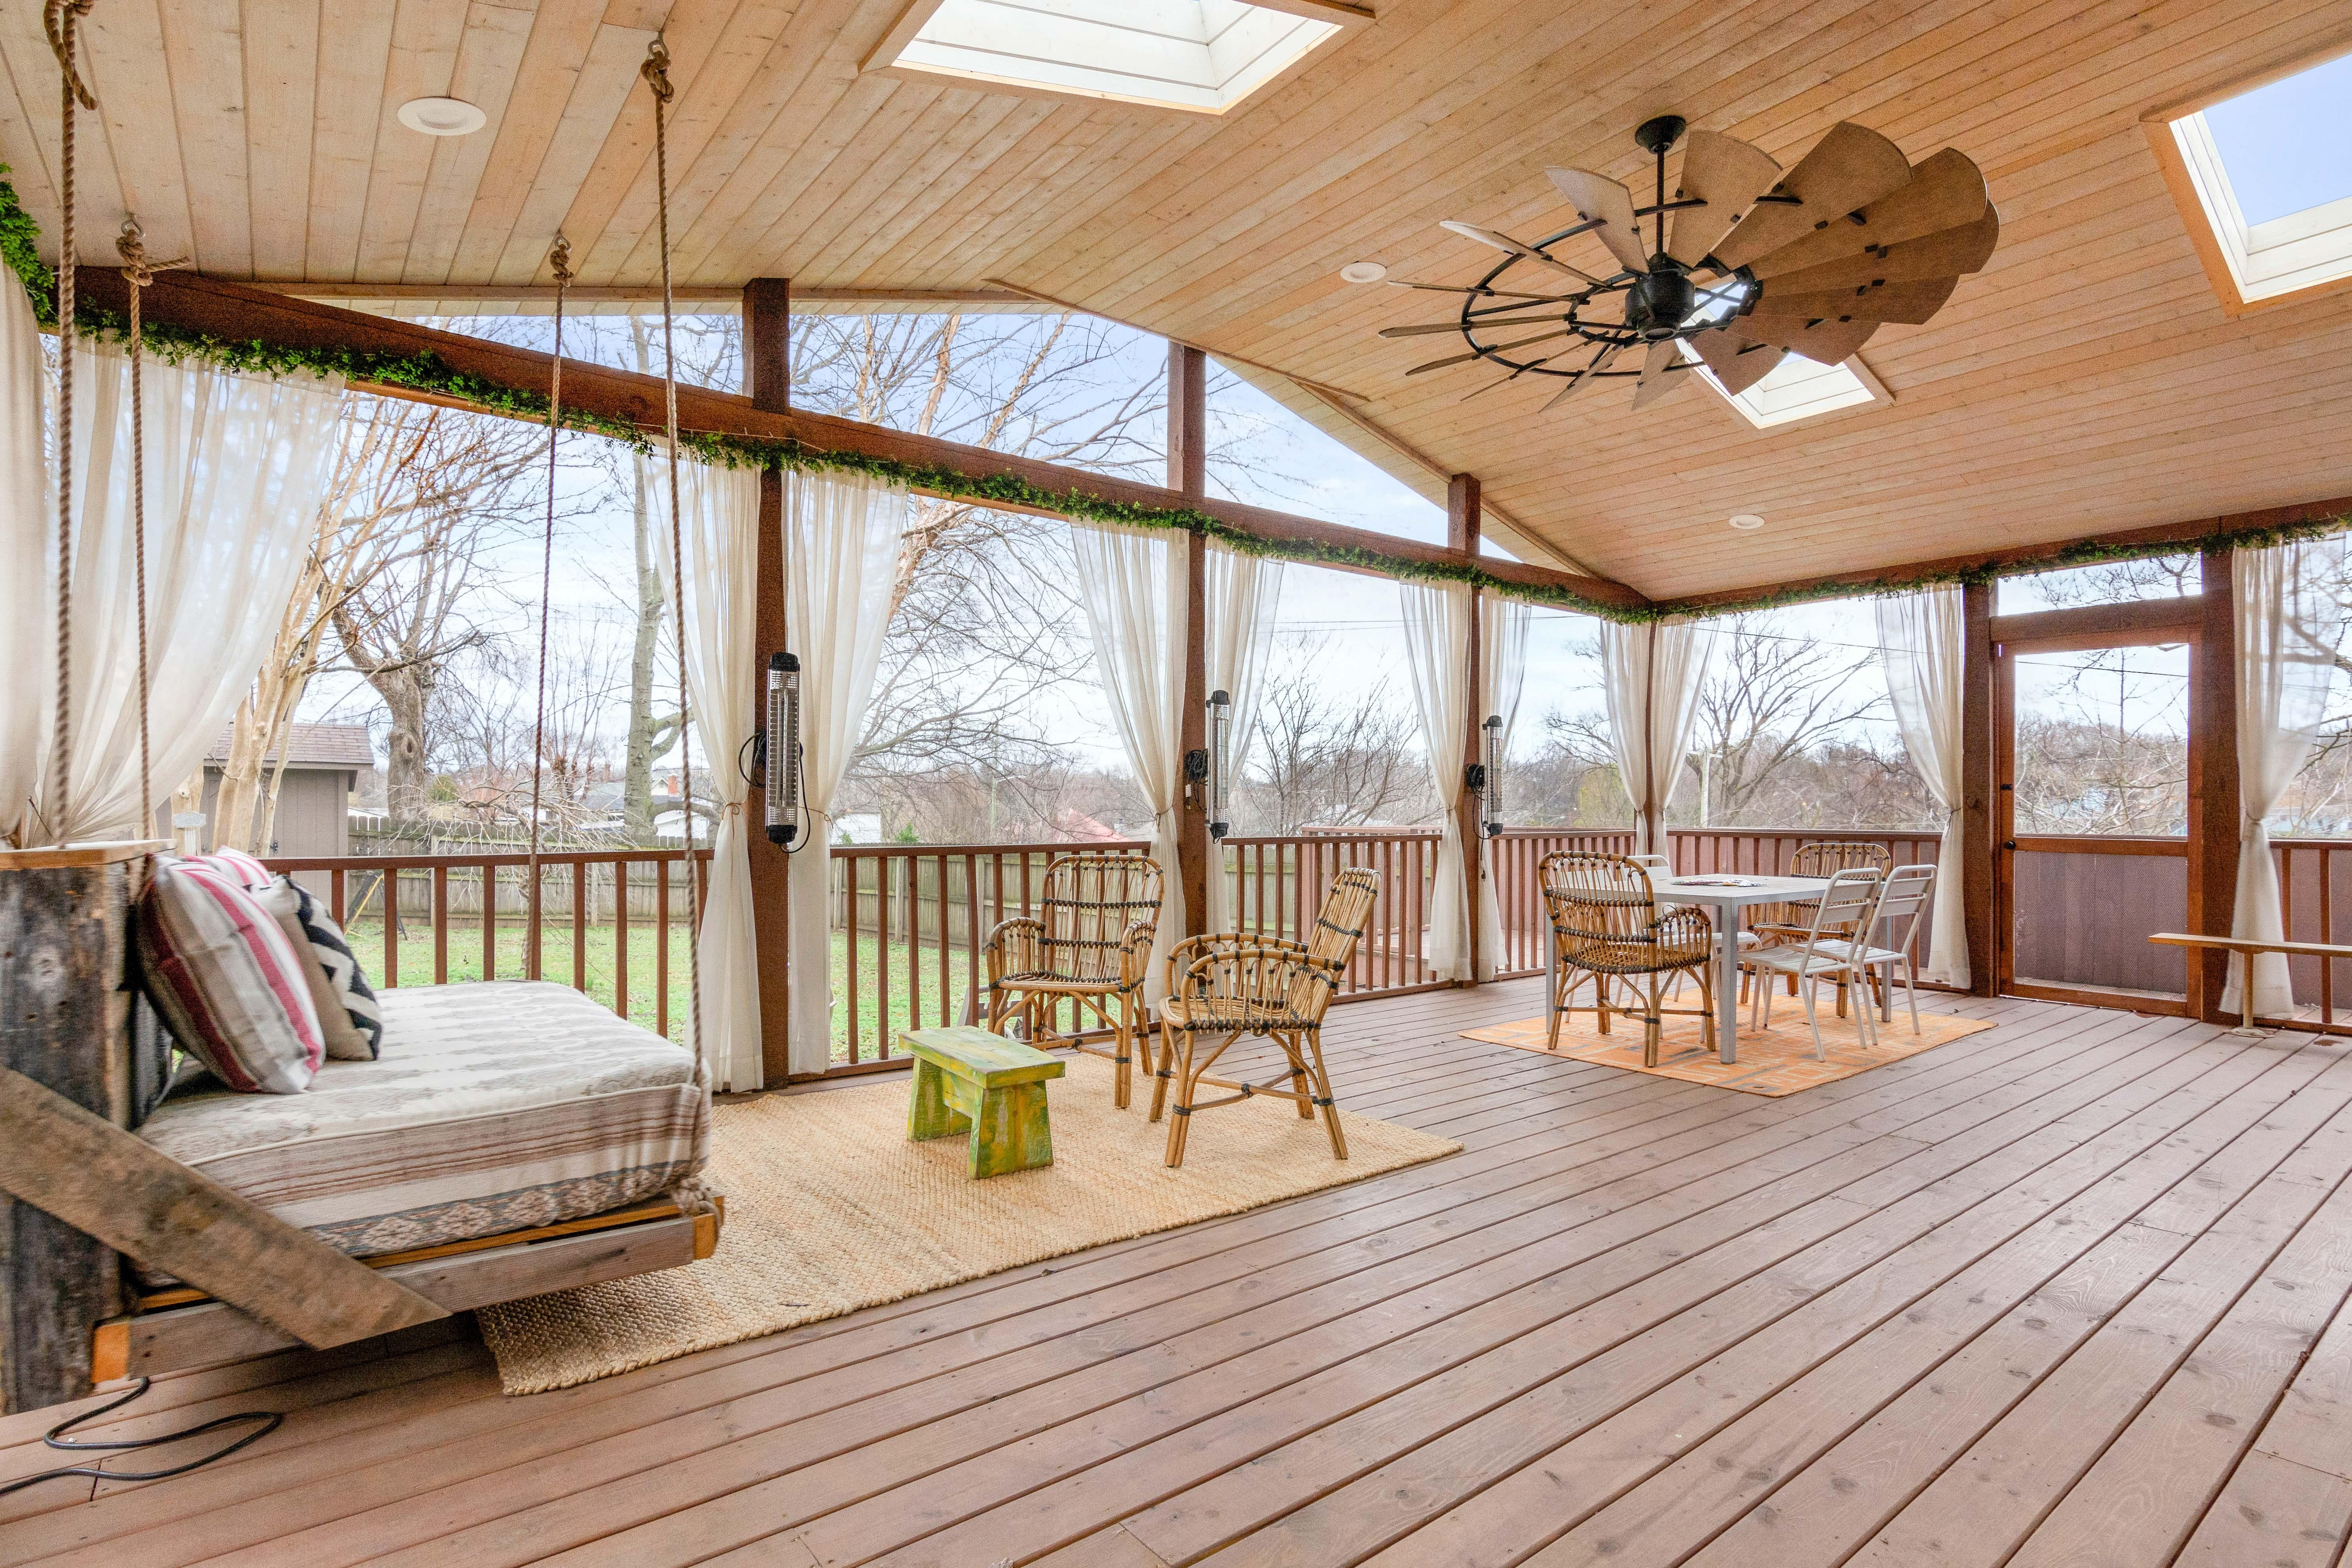 The screened veranda offers a serene retreat on sunny Tennessee days.